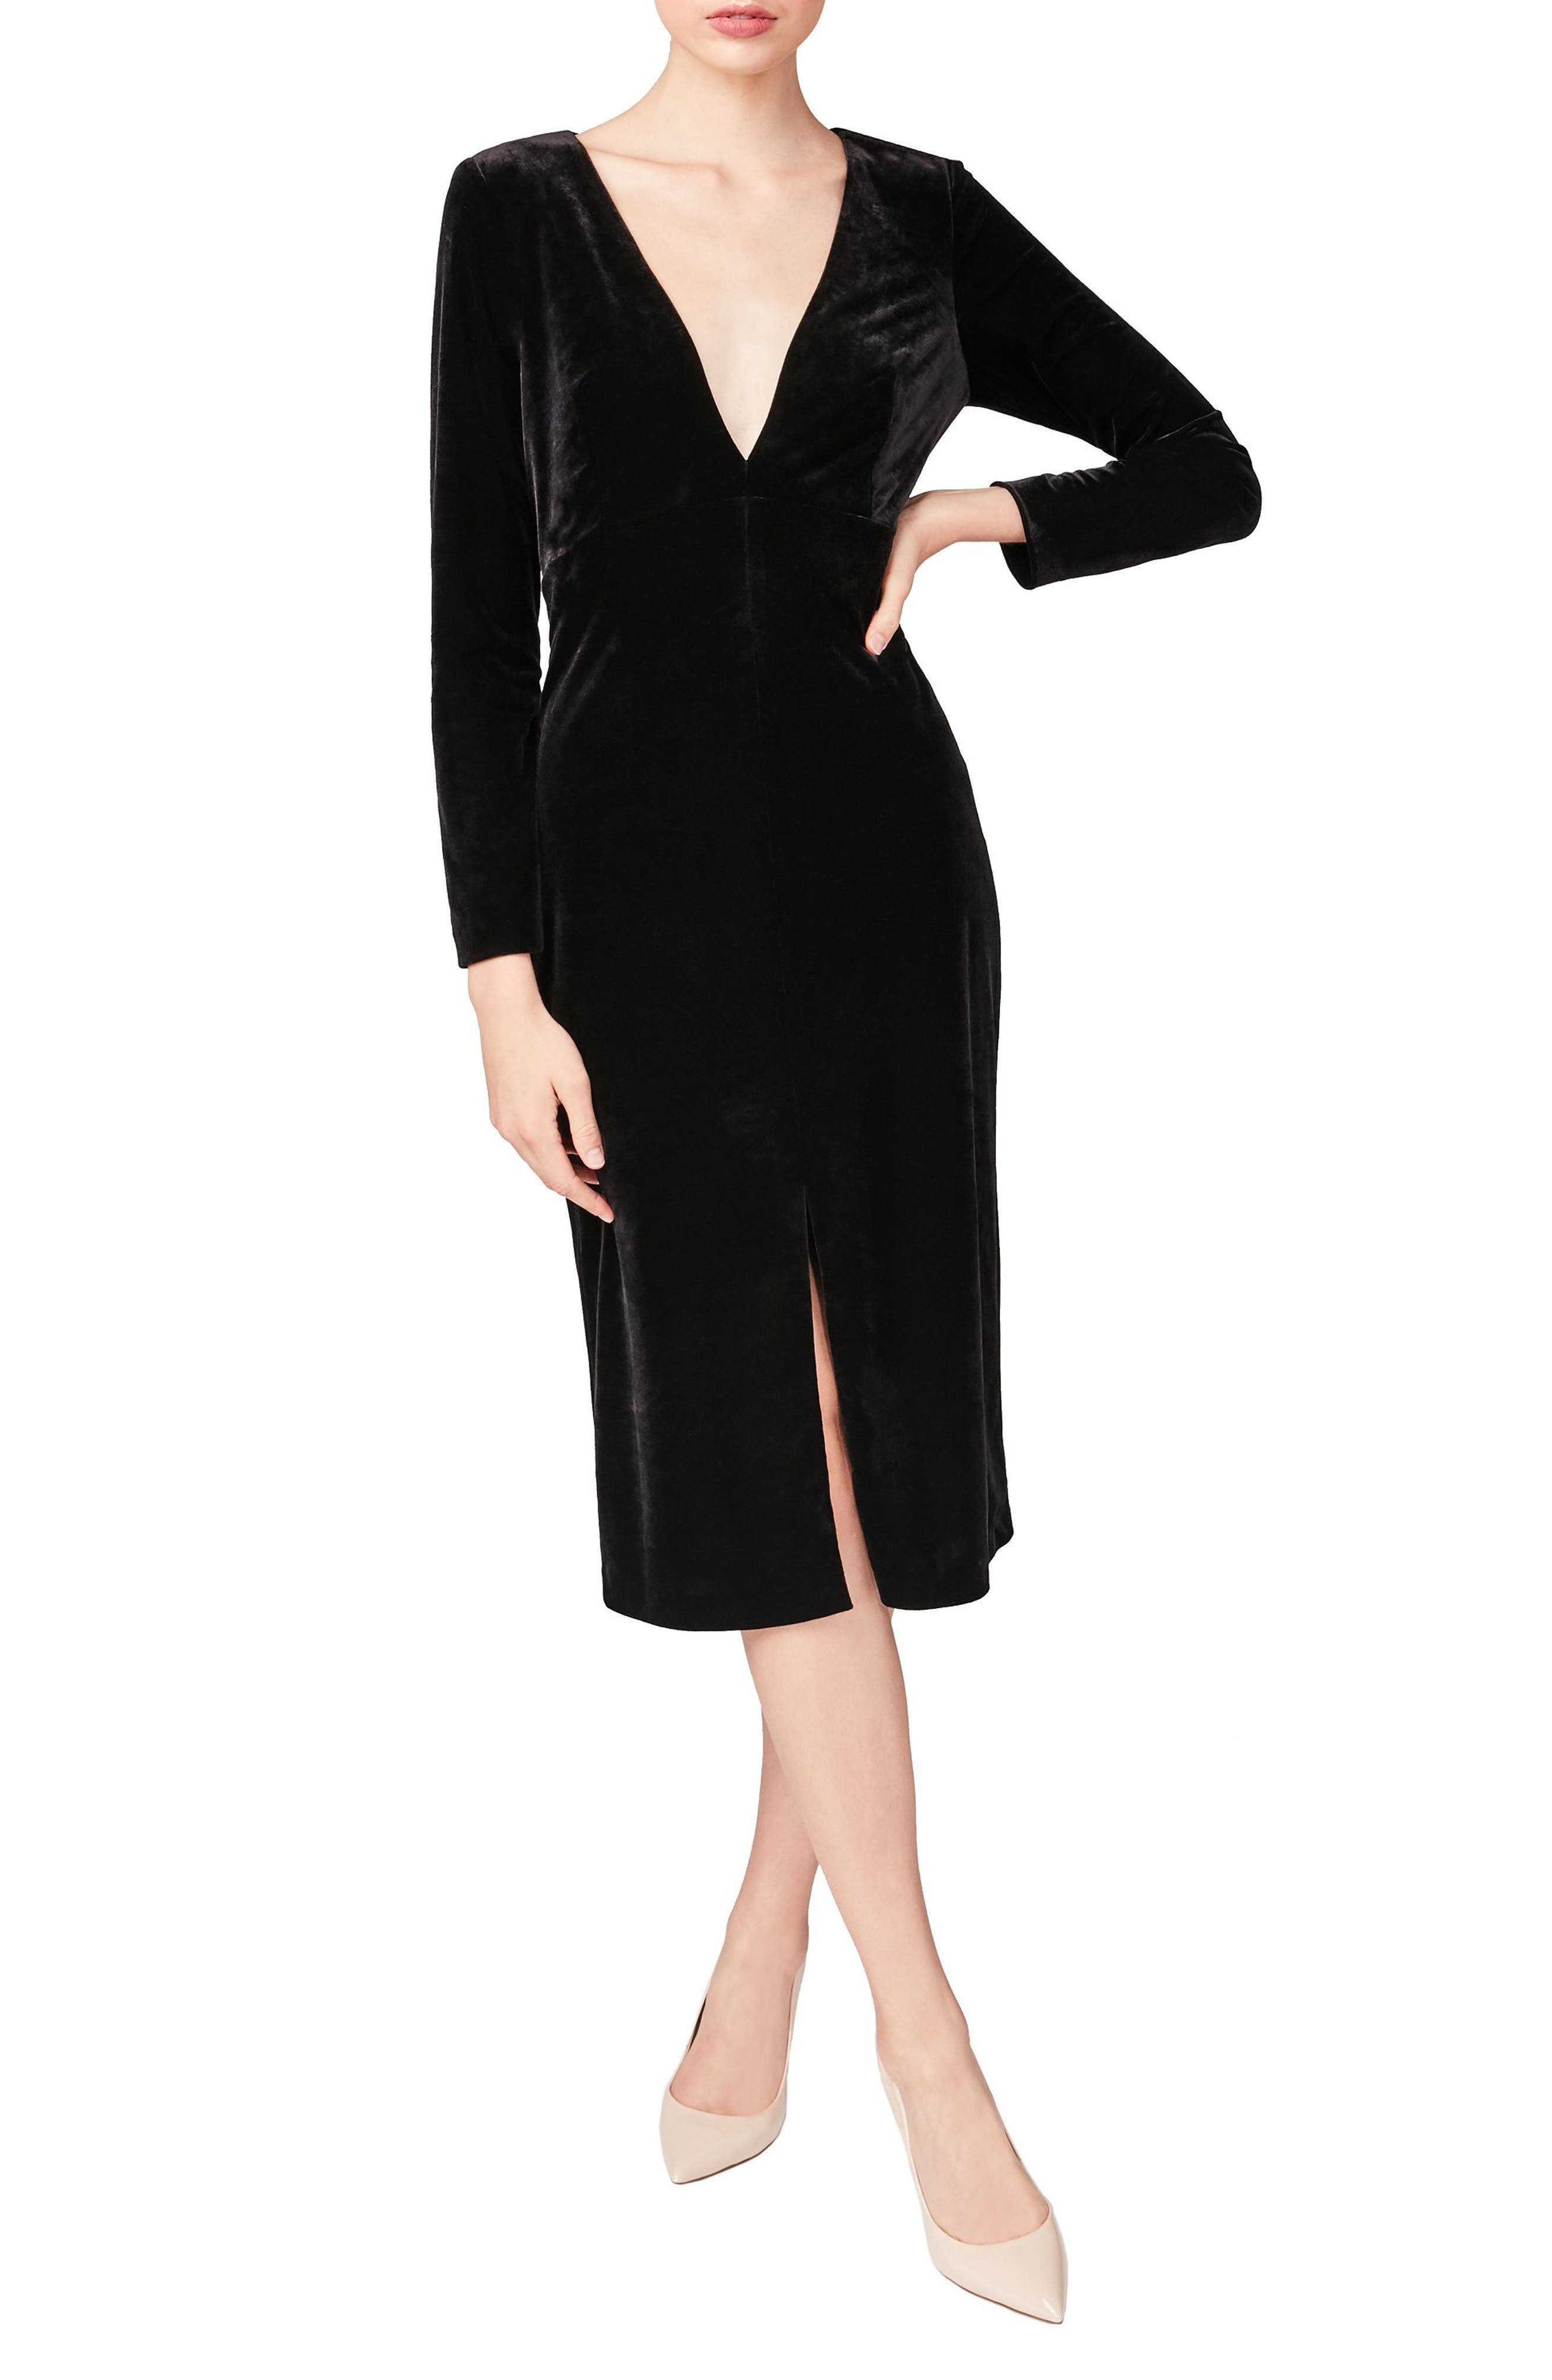 Alternate Image 1 Selected - Betsey Johnson Velvet Sheath Dress